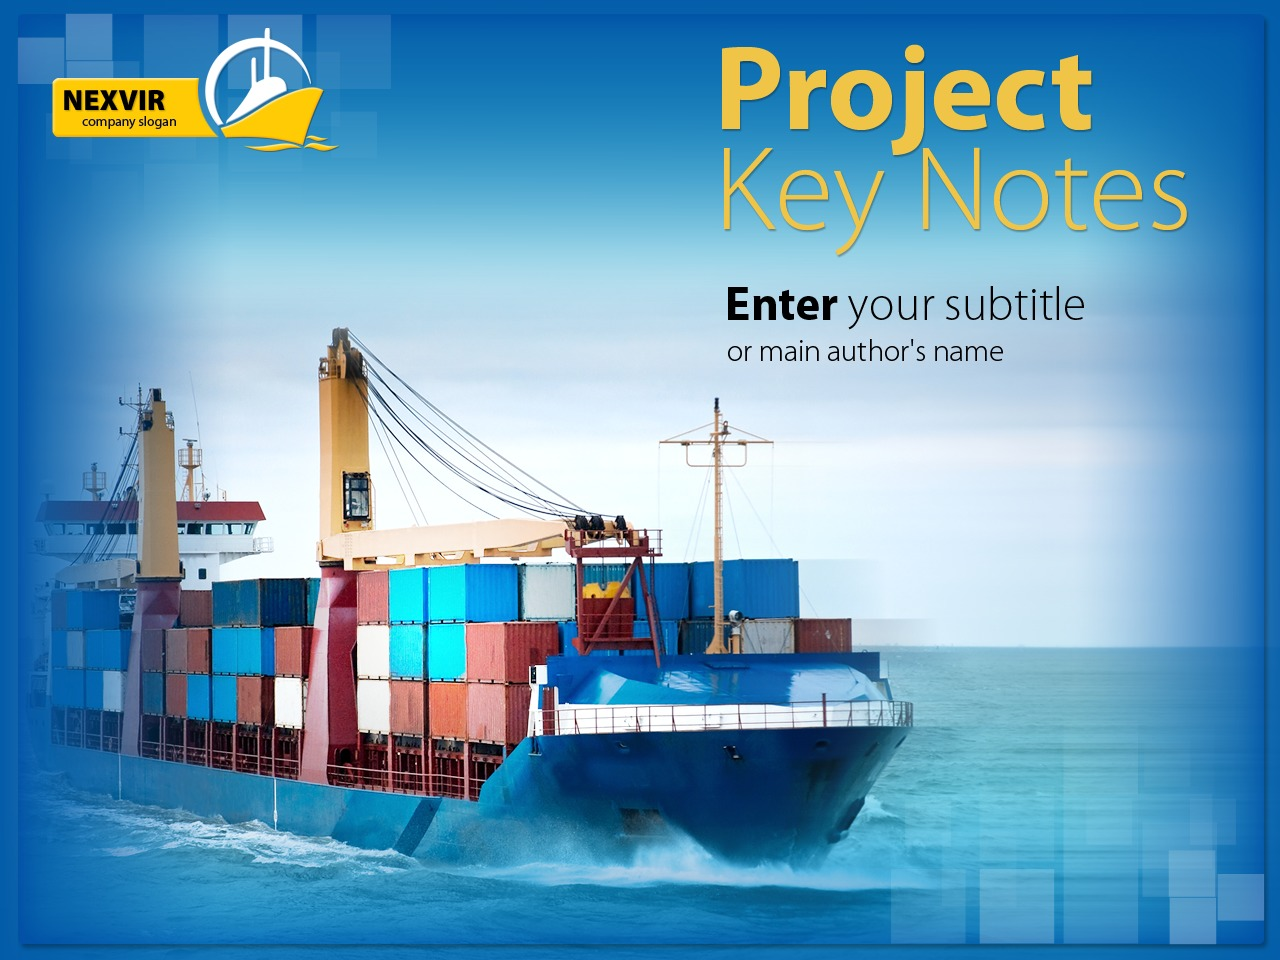 Transportation powerpoint templates maritime powerpoint template 26283 toneelgroepblik Choice Image